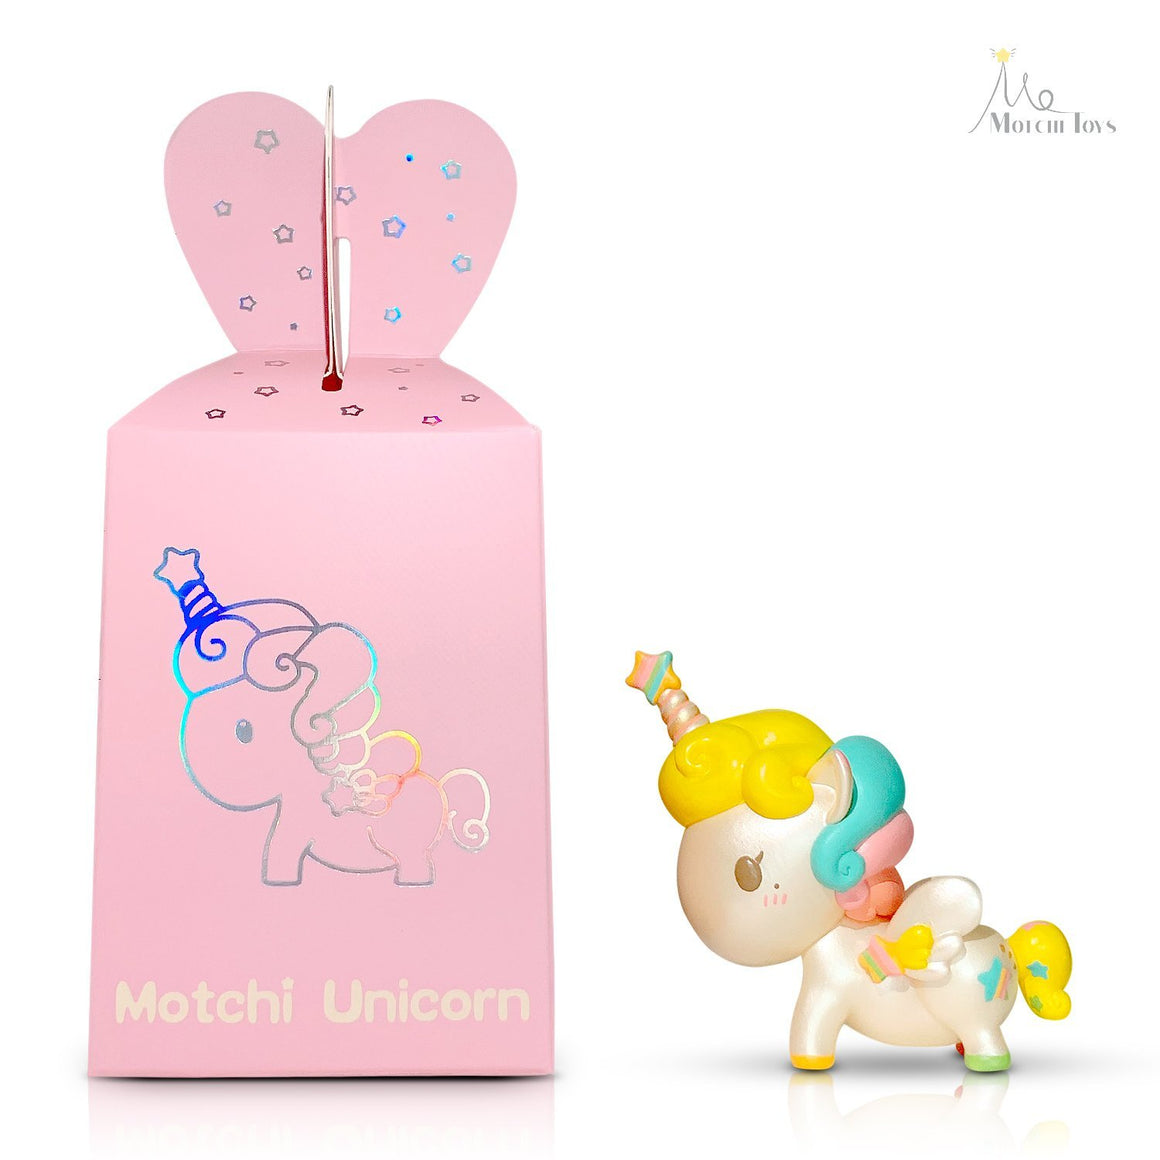 Motchi Unicorn by Motchi Toys (Hand Made and Hand Painted)